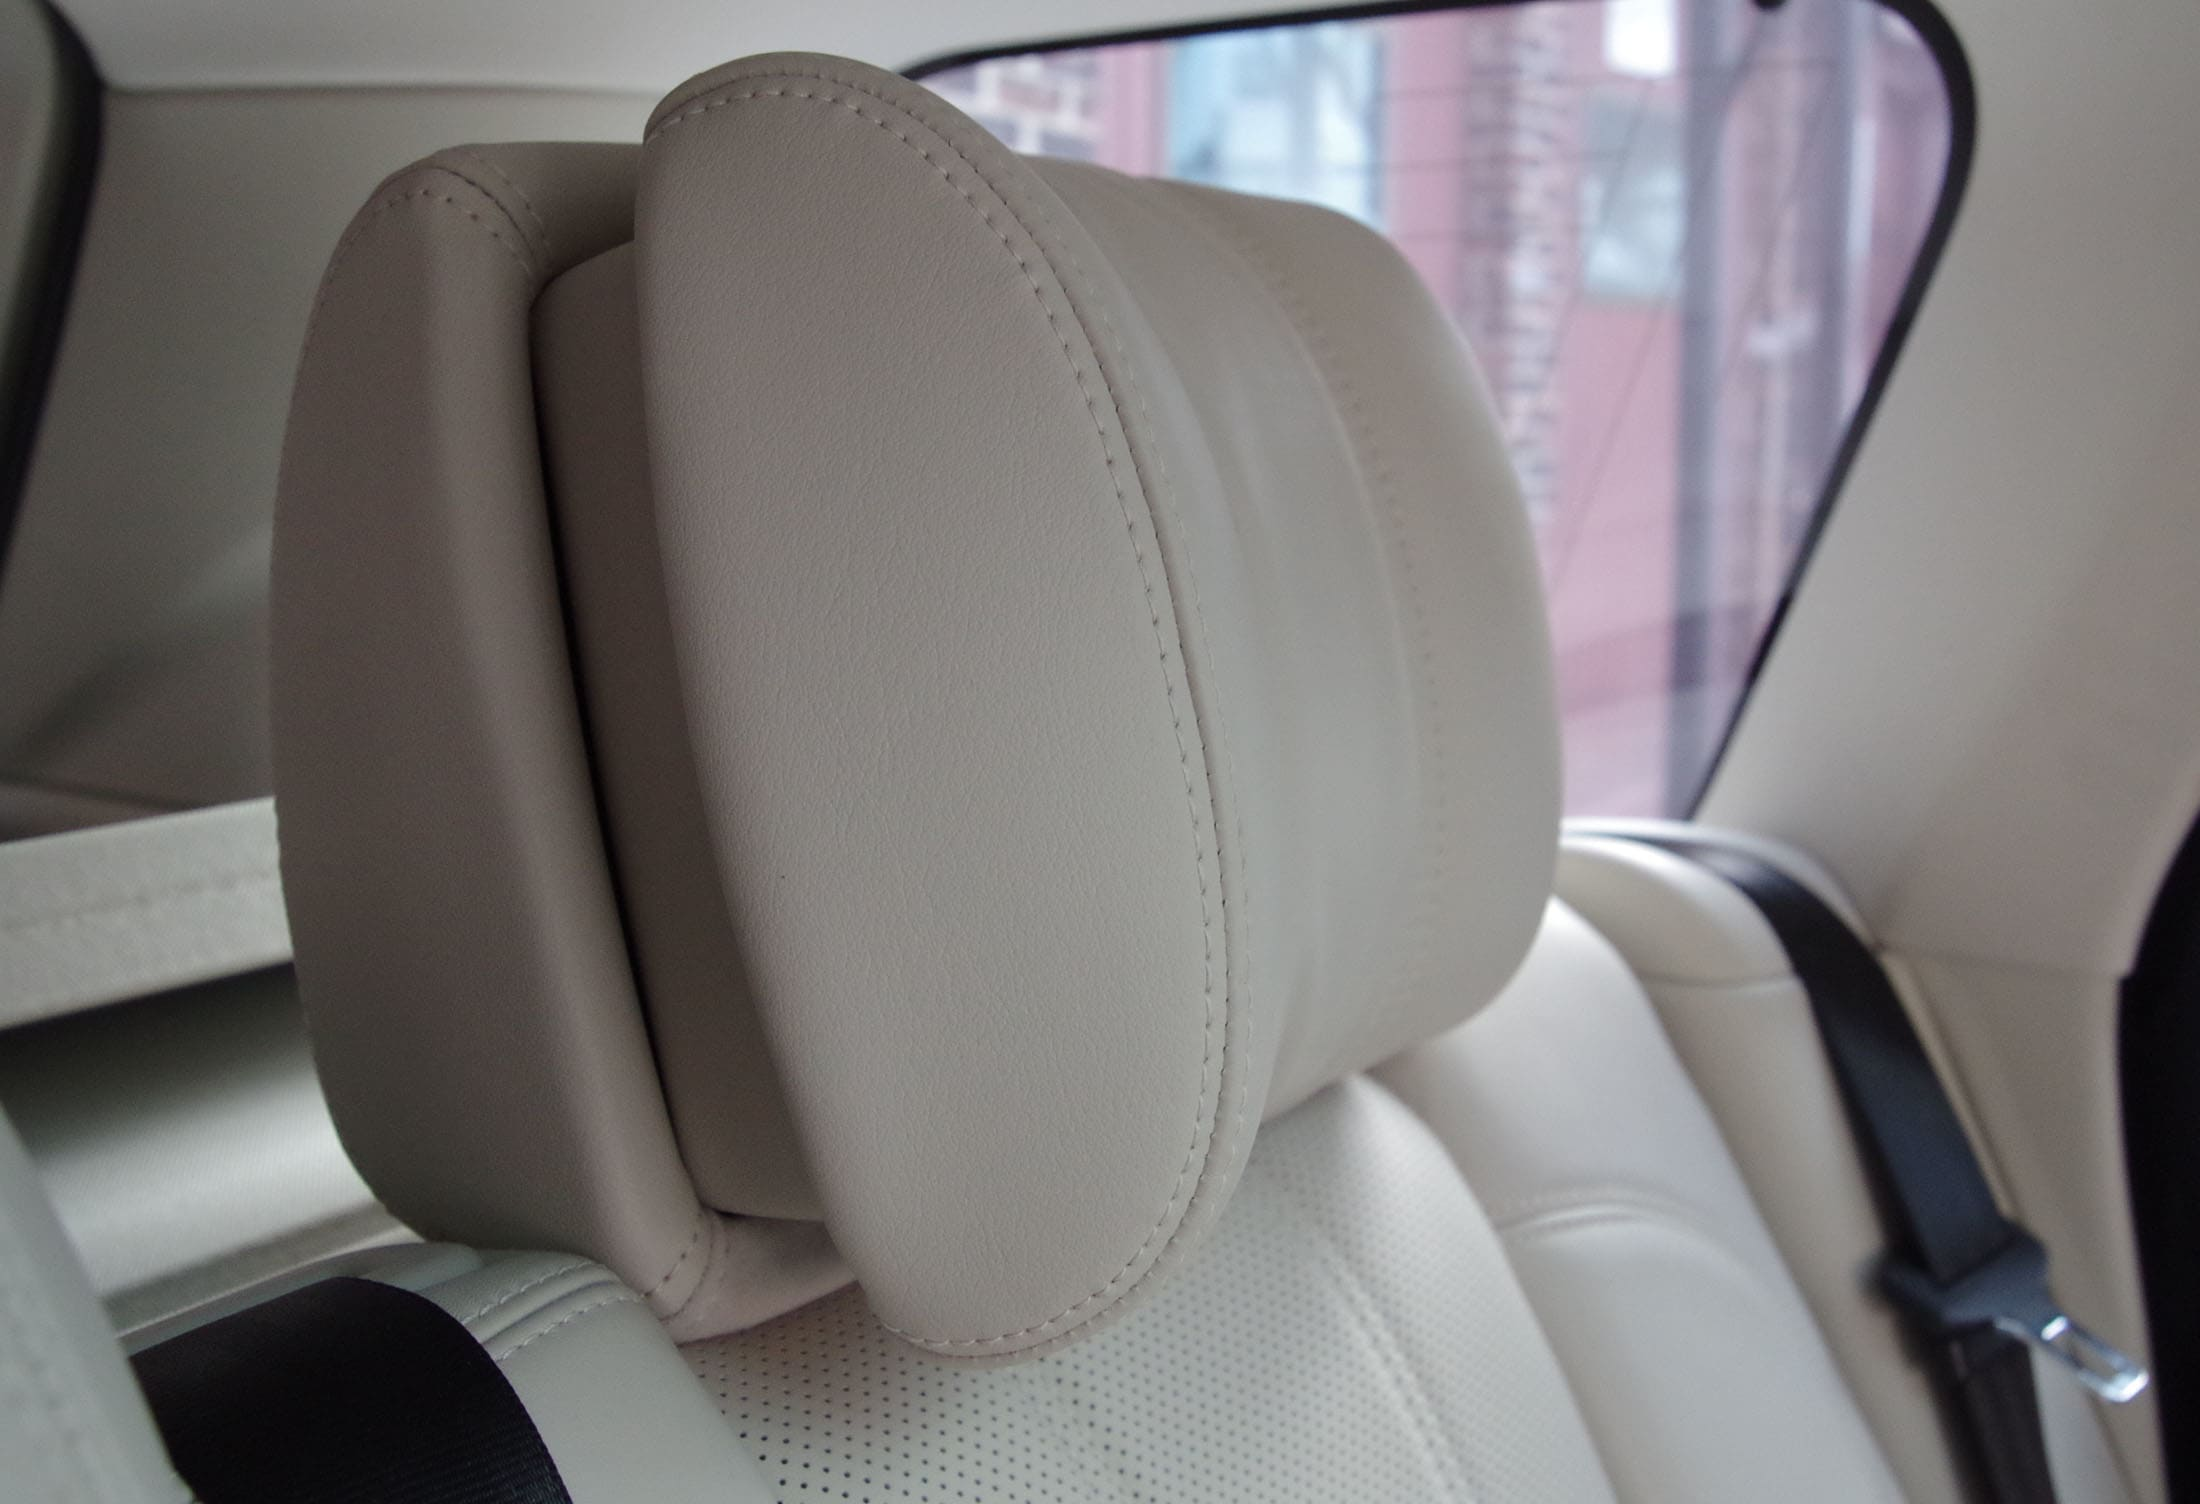 Adjustable headrests are comfortable.